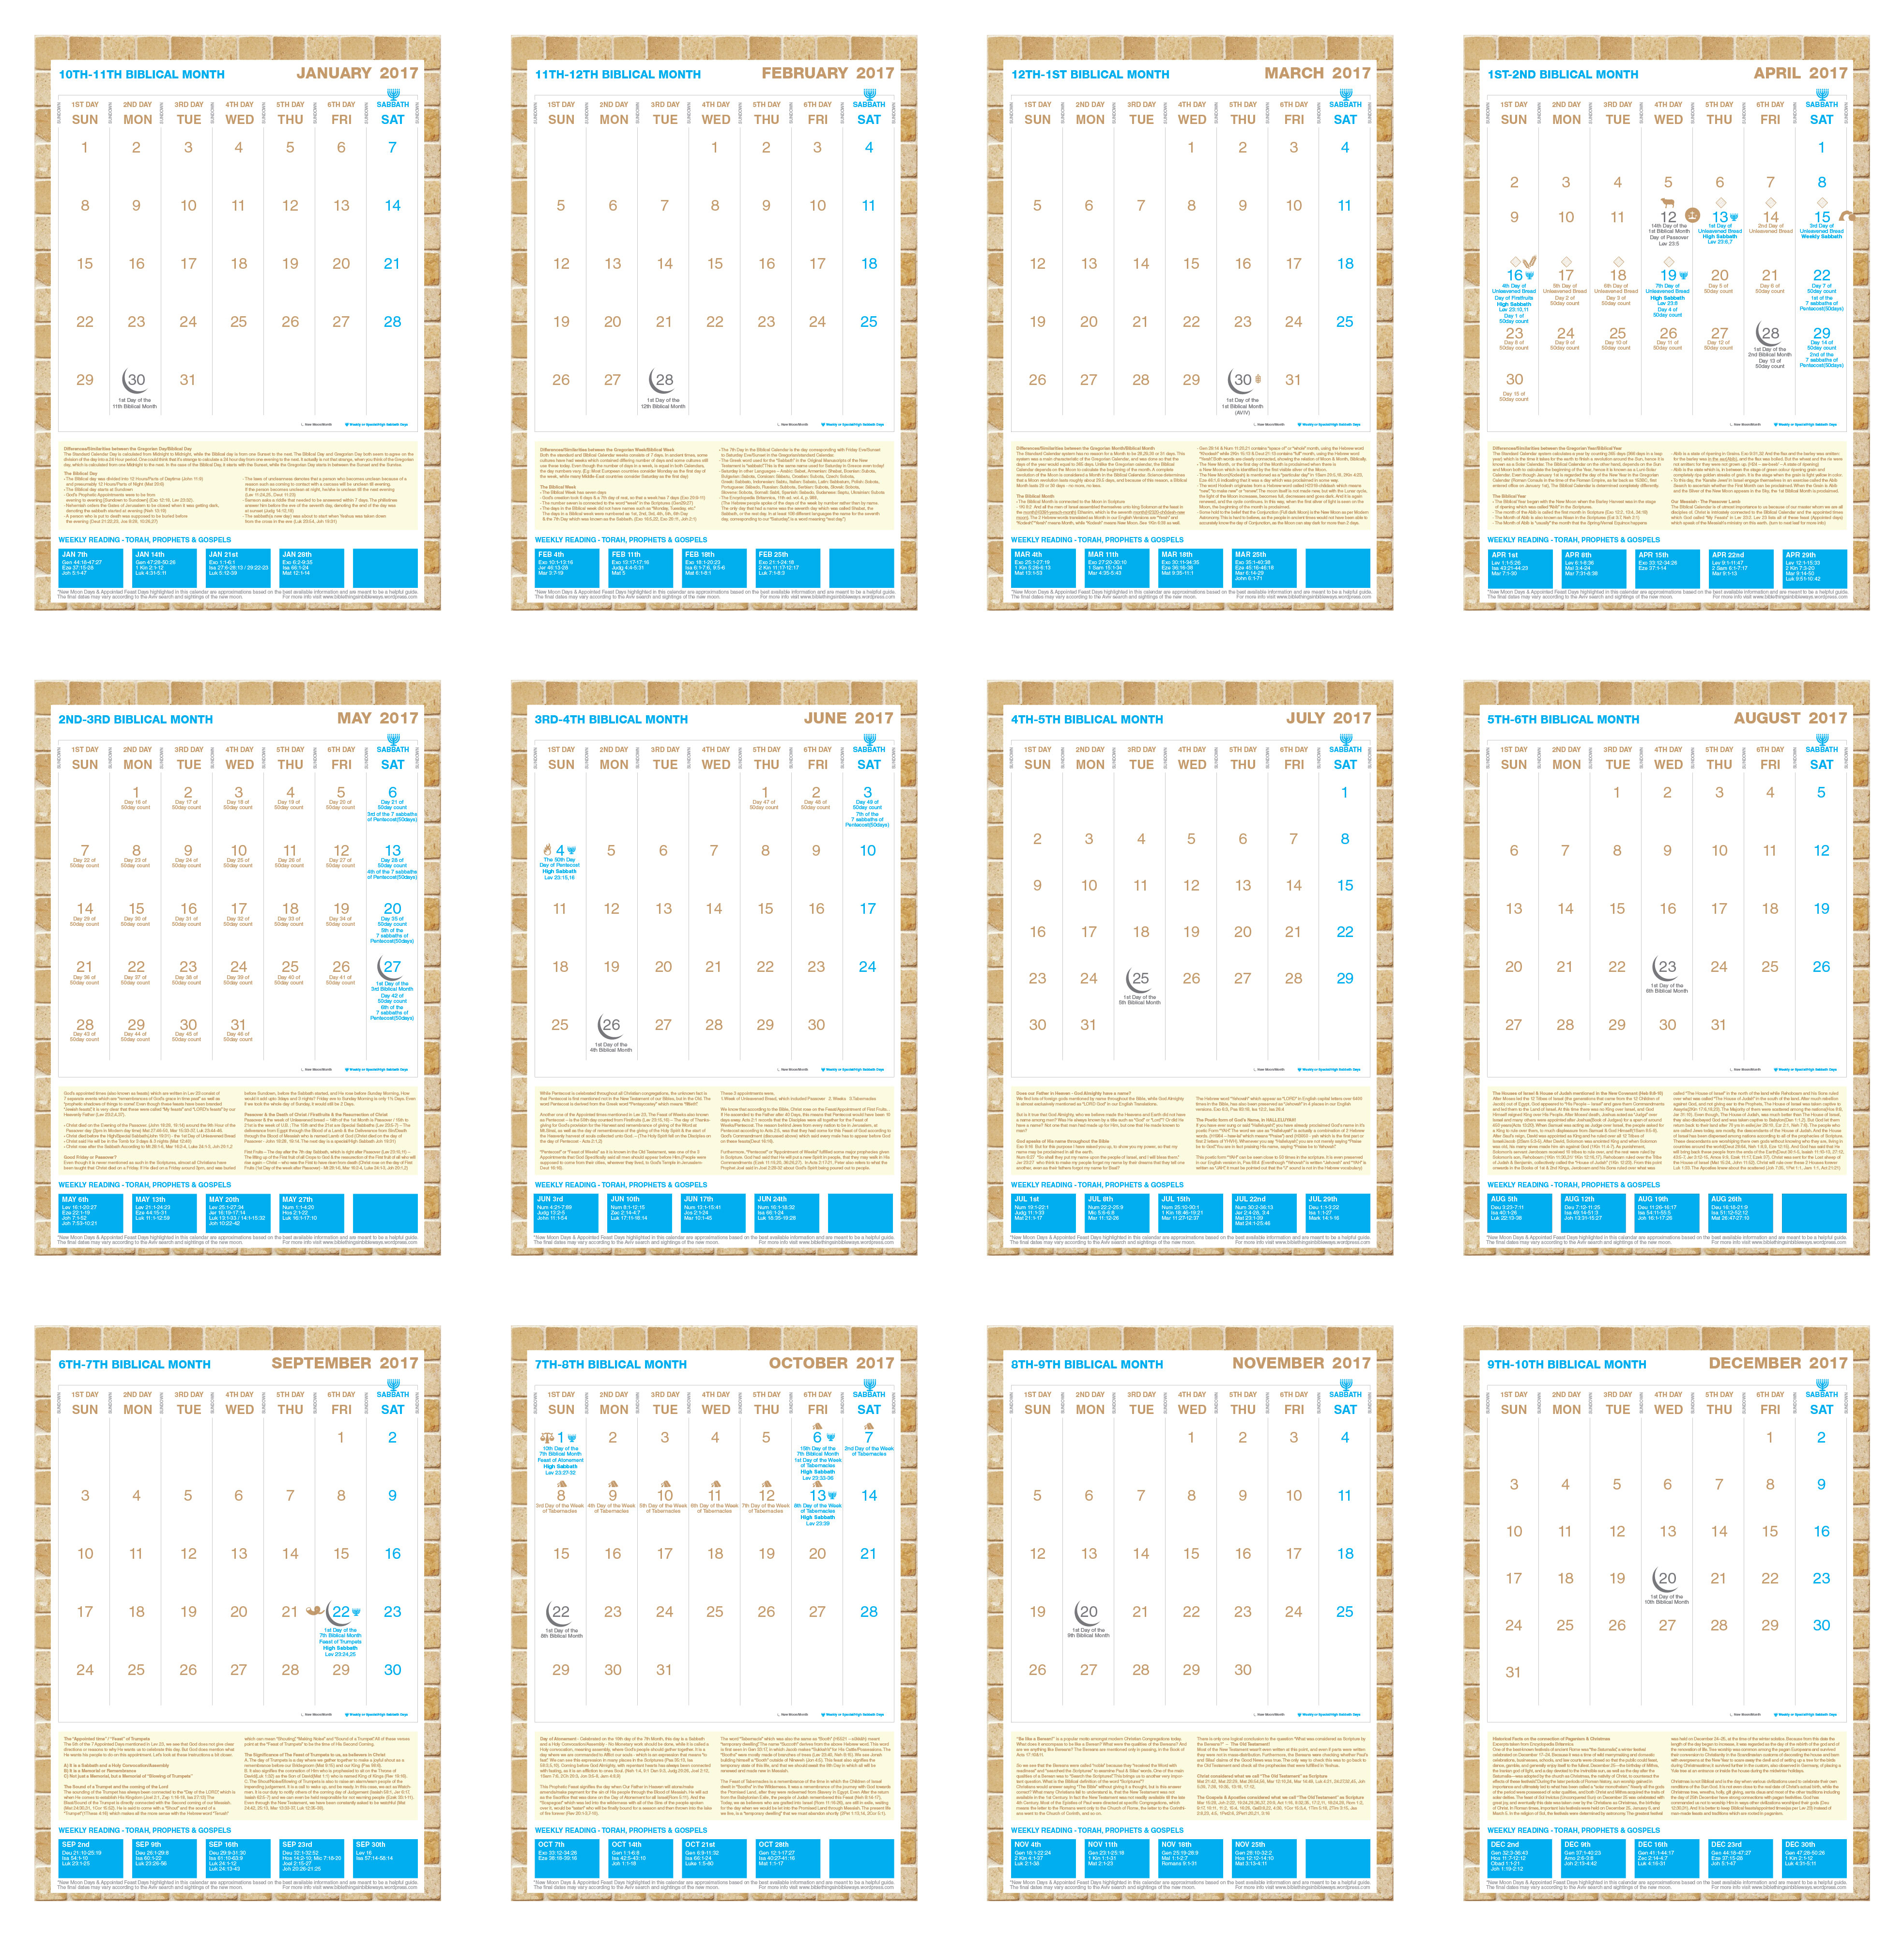 2017 Calendar With Biblical Appointed Feast Days, New Moons